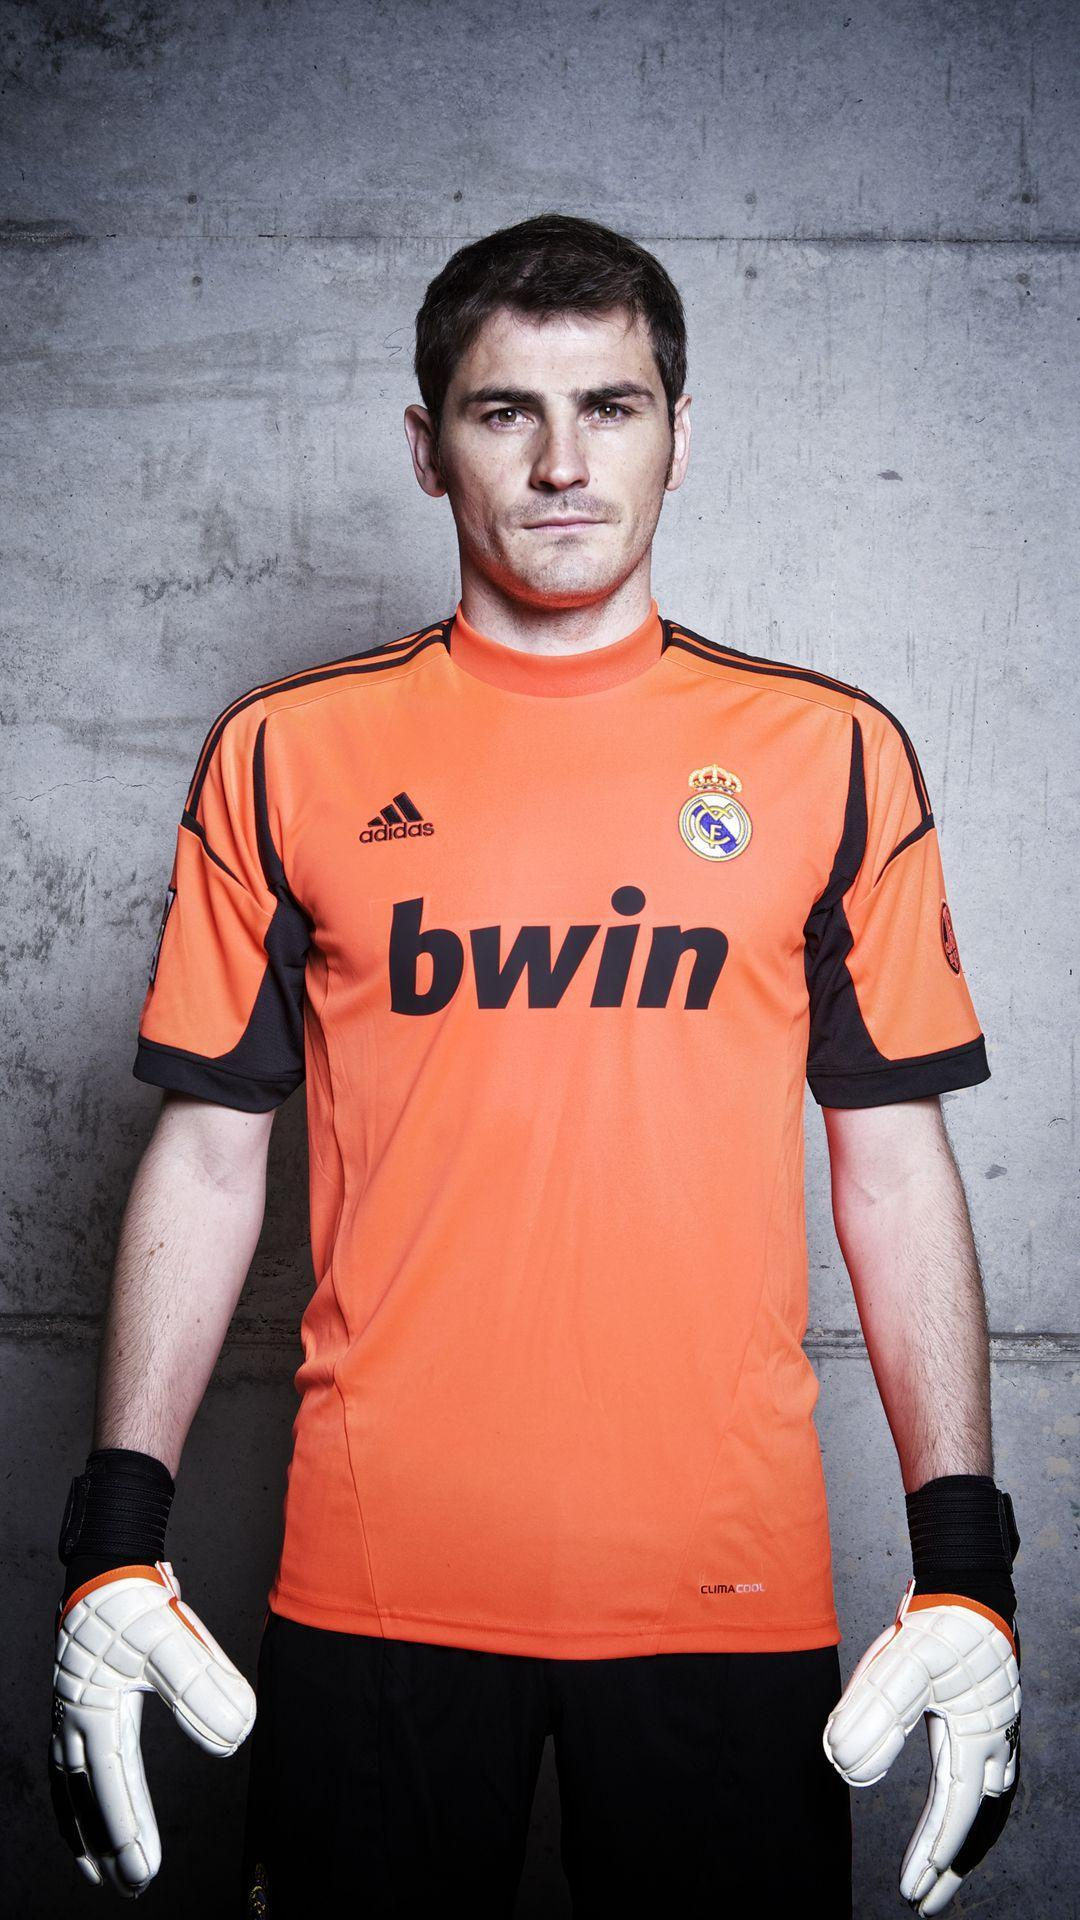 Iker Casillas htc one wallpaper - Best htc one wallpapers